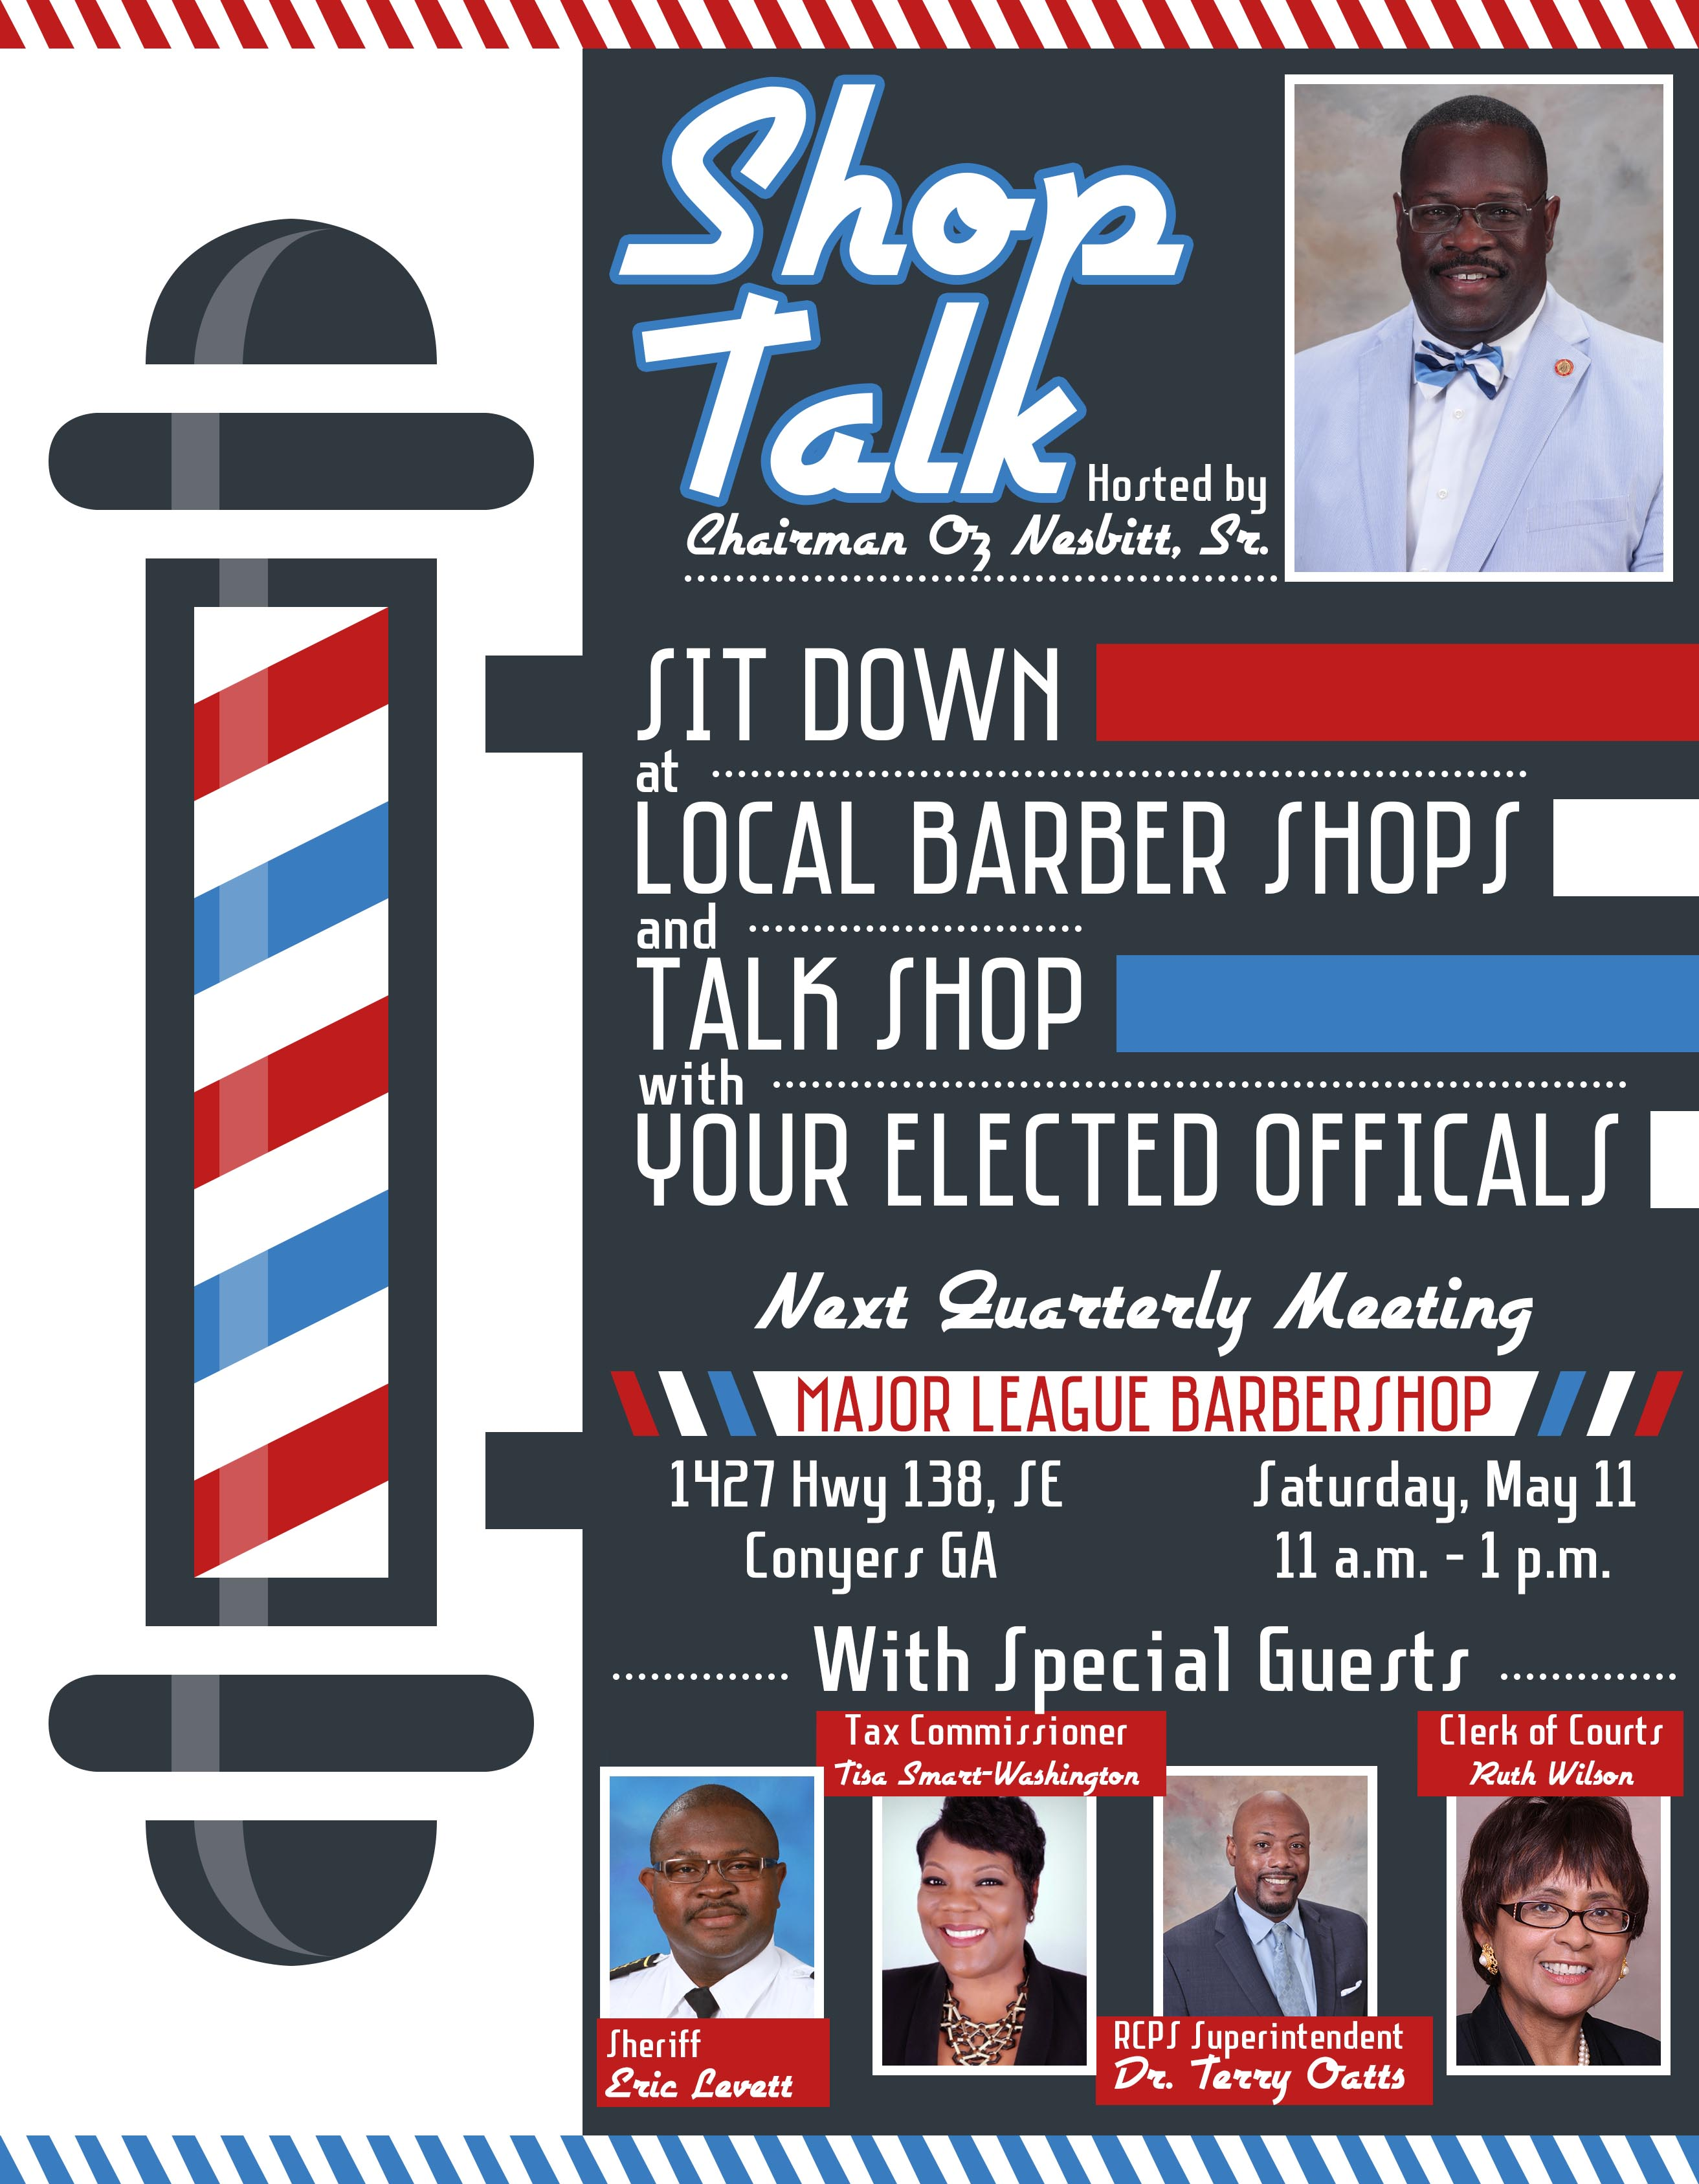 Shop Talk #2 @ Major League Barbershop